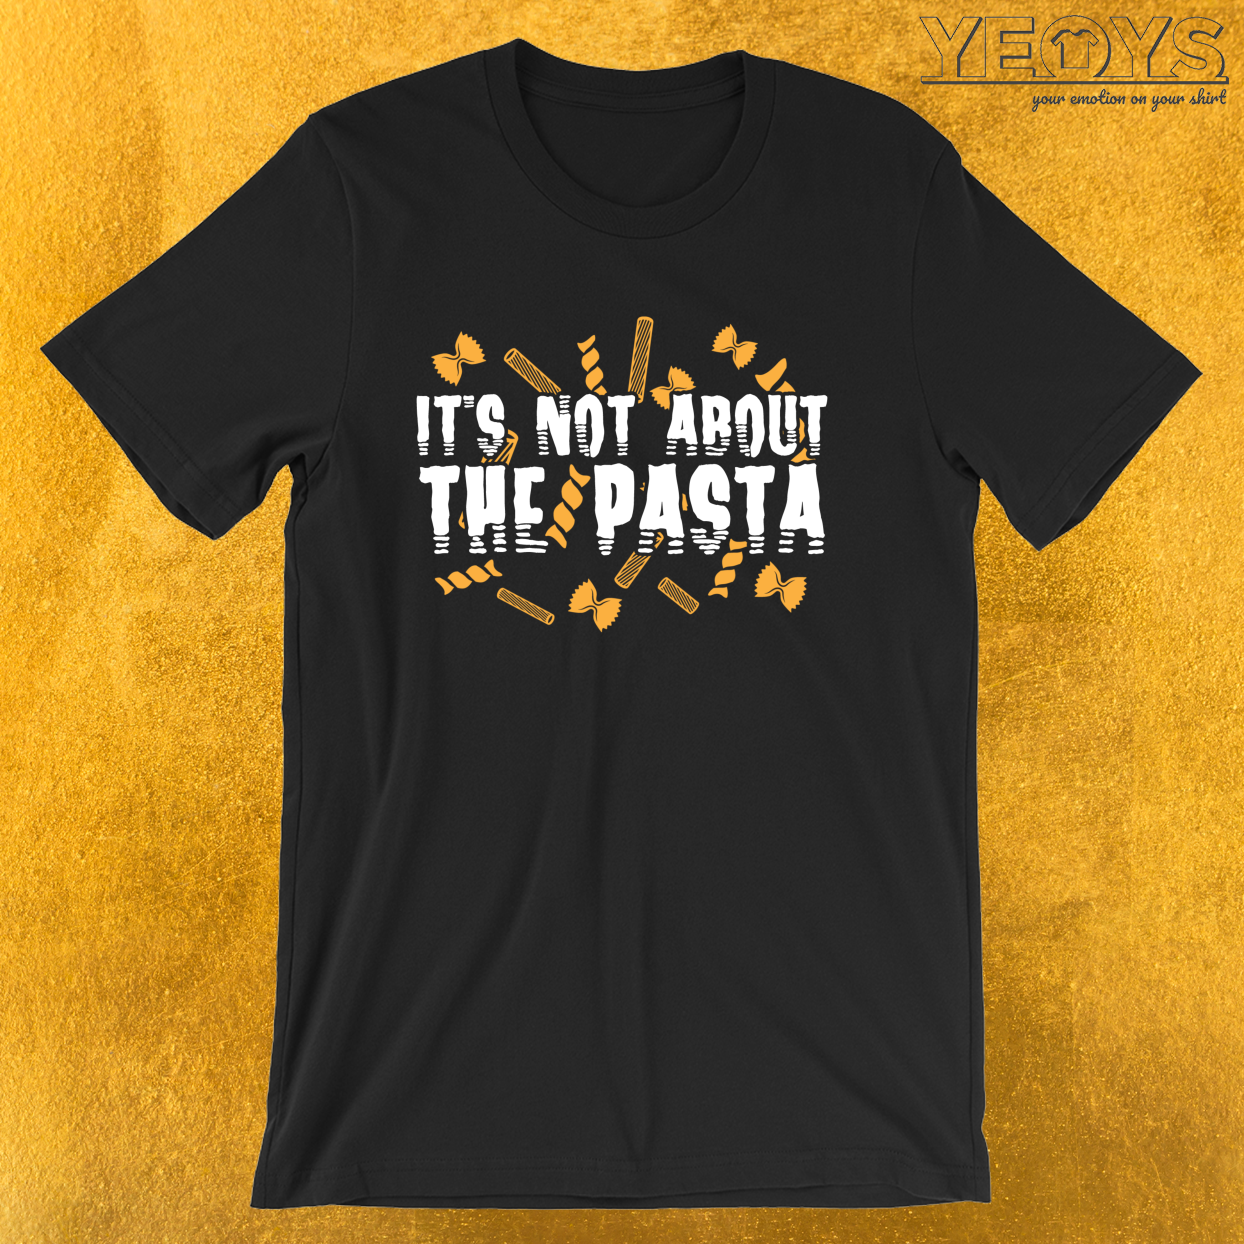 It's Not About The Pasta – Funny I Love Italian Pasta Tee